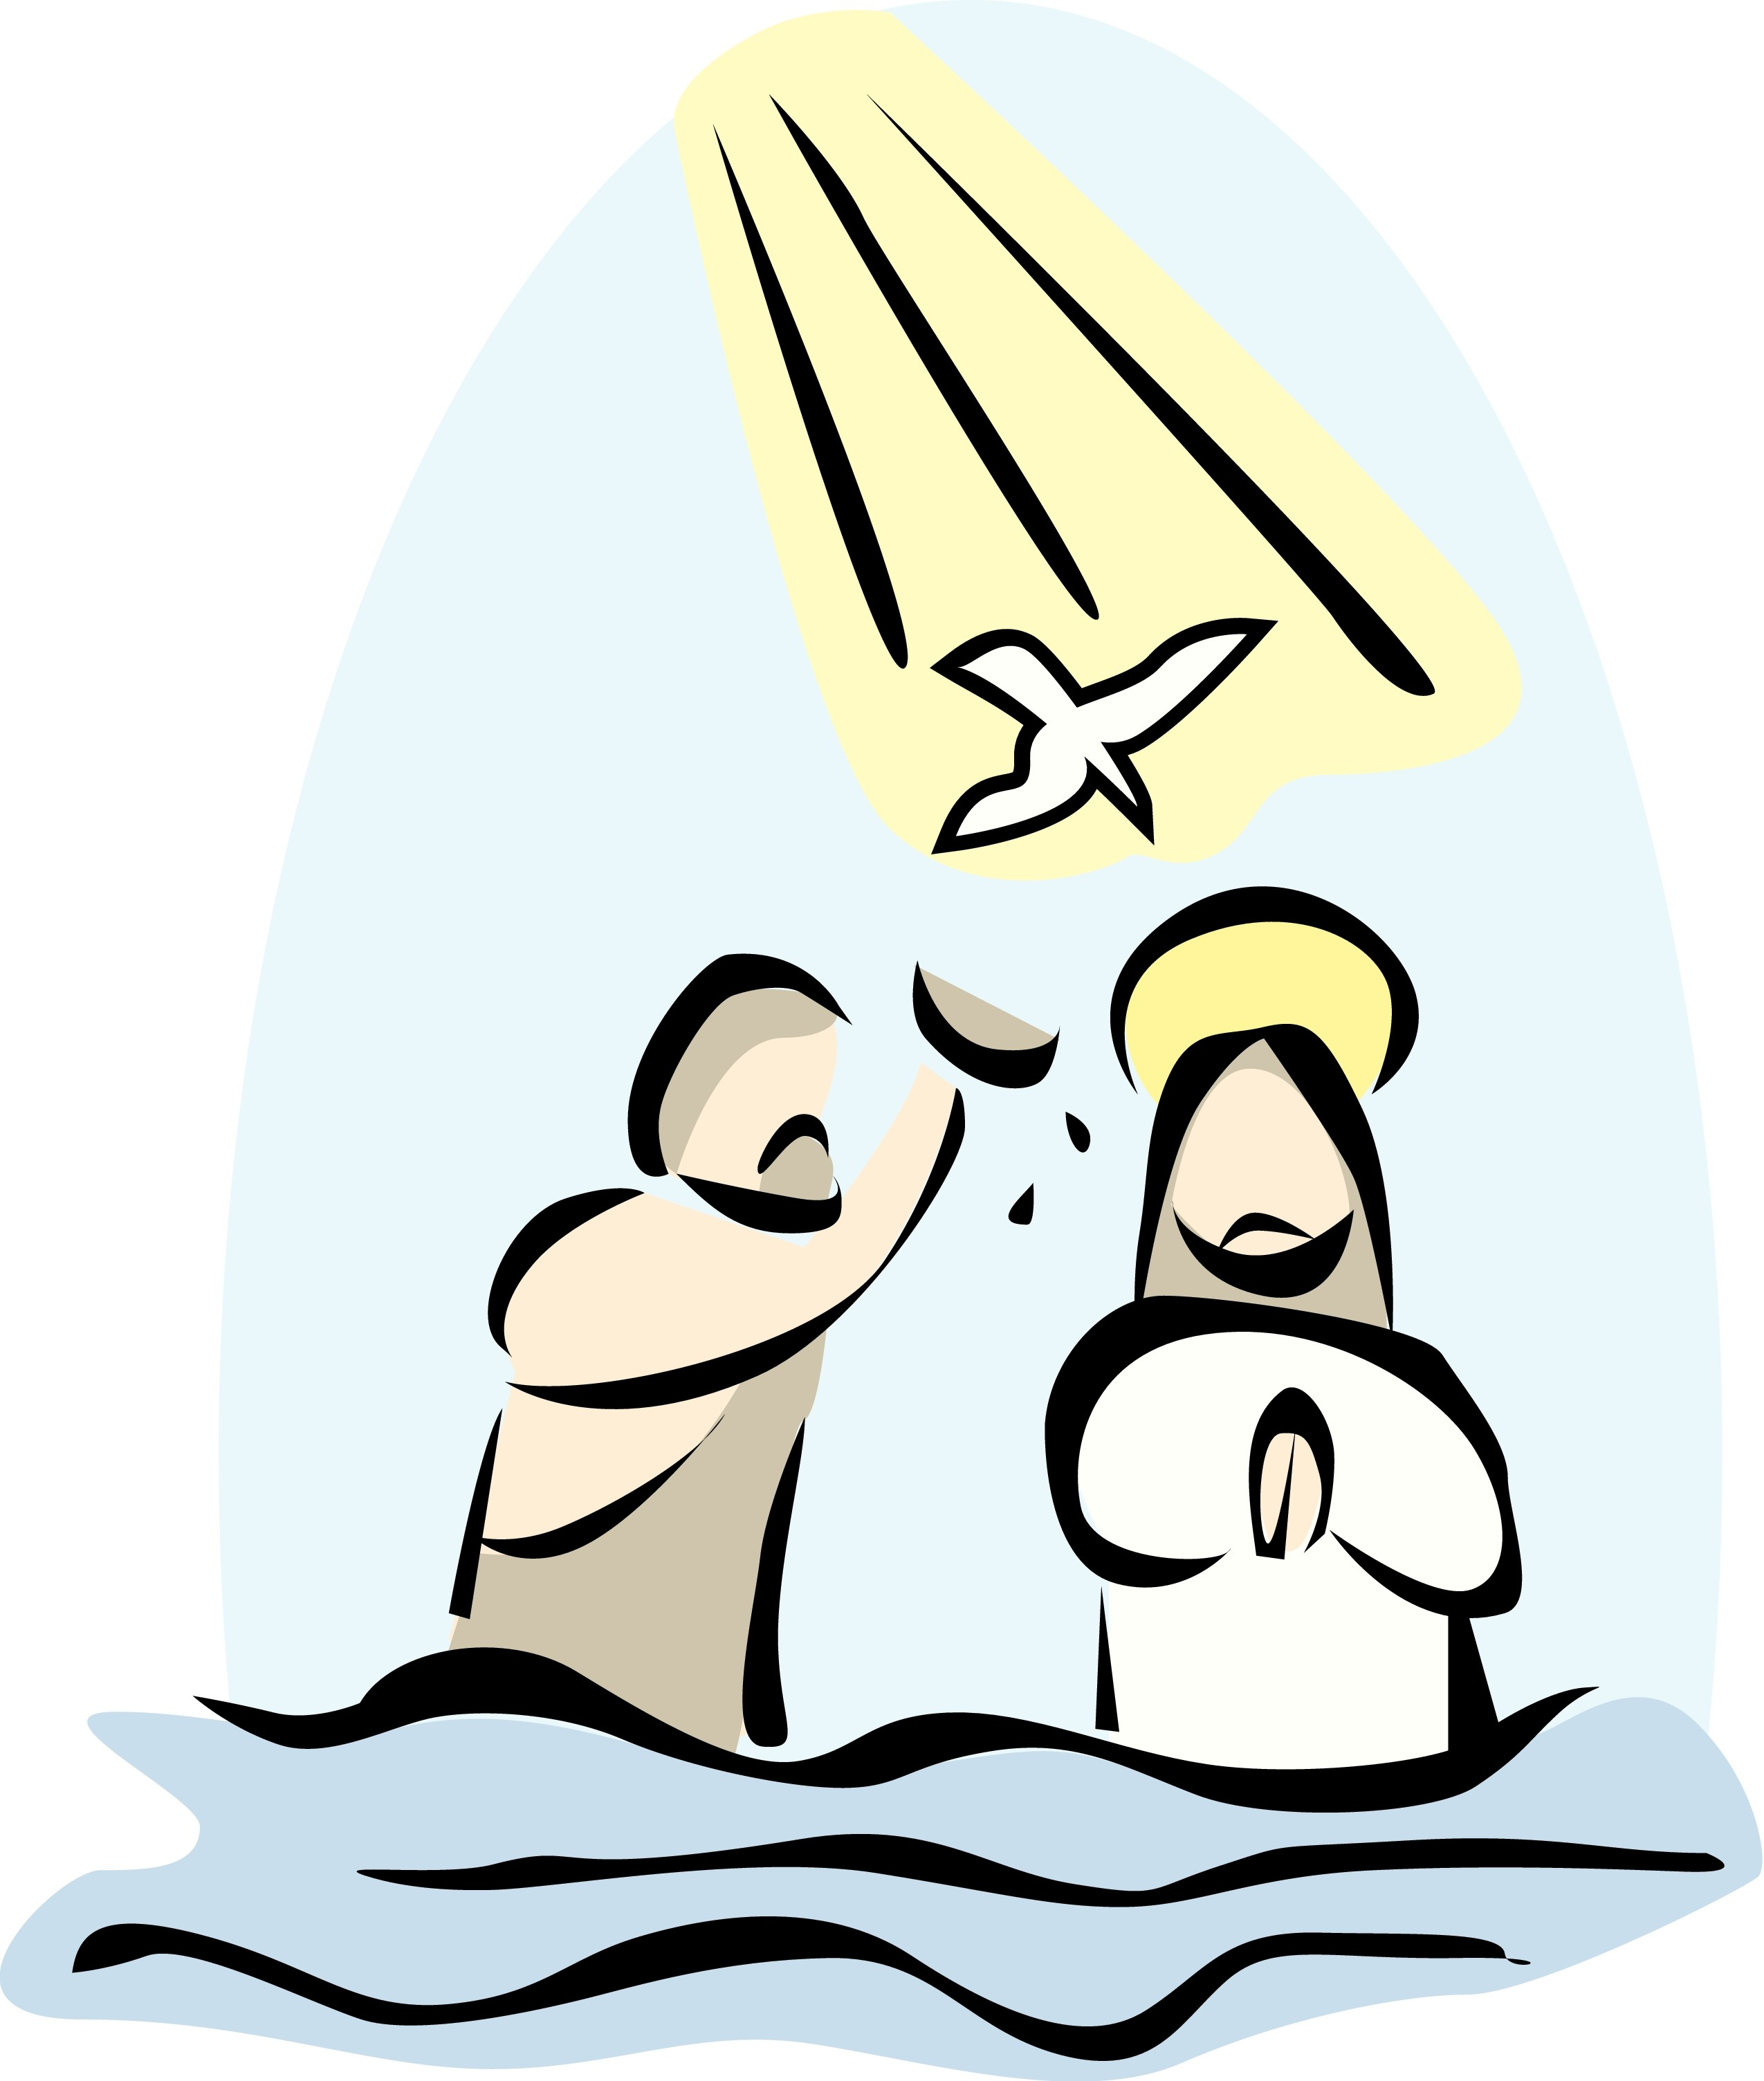 Baptism clipart animated. Craft projects symbols clipartoons